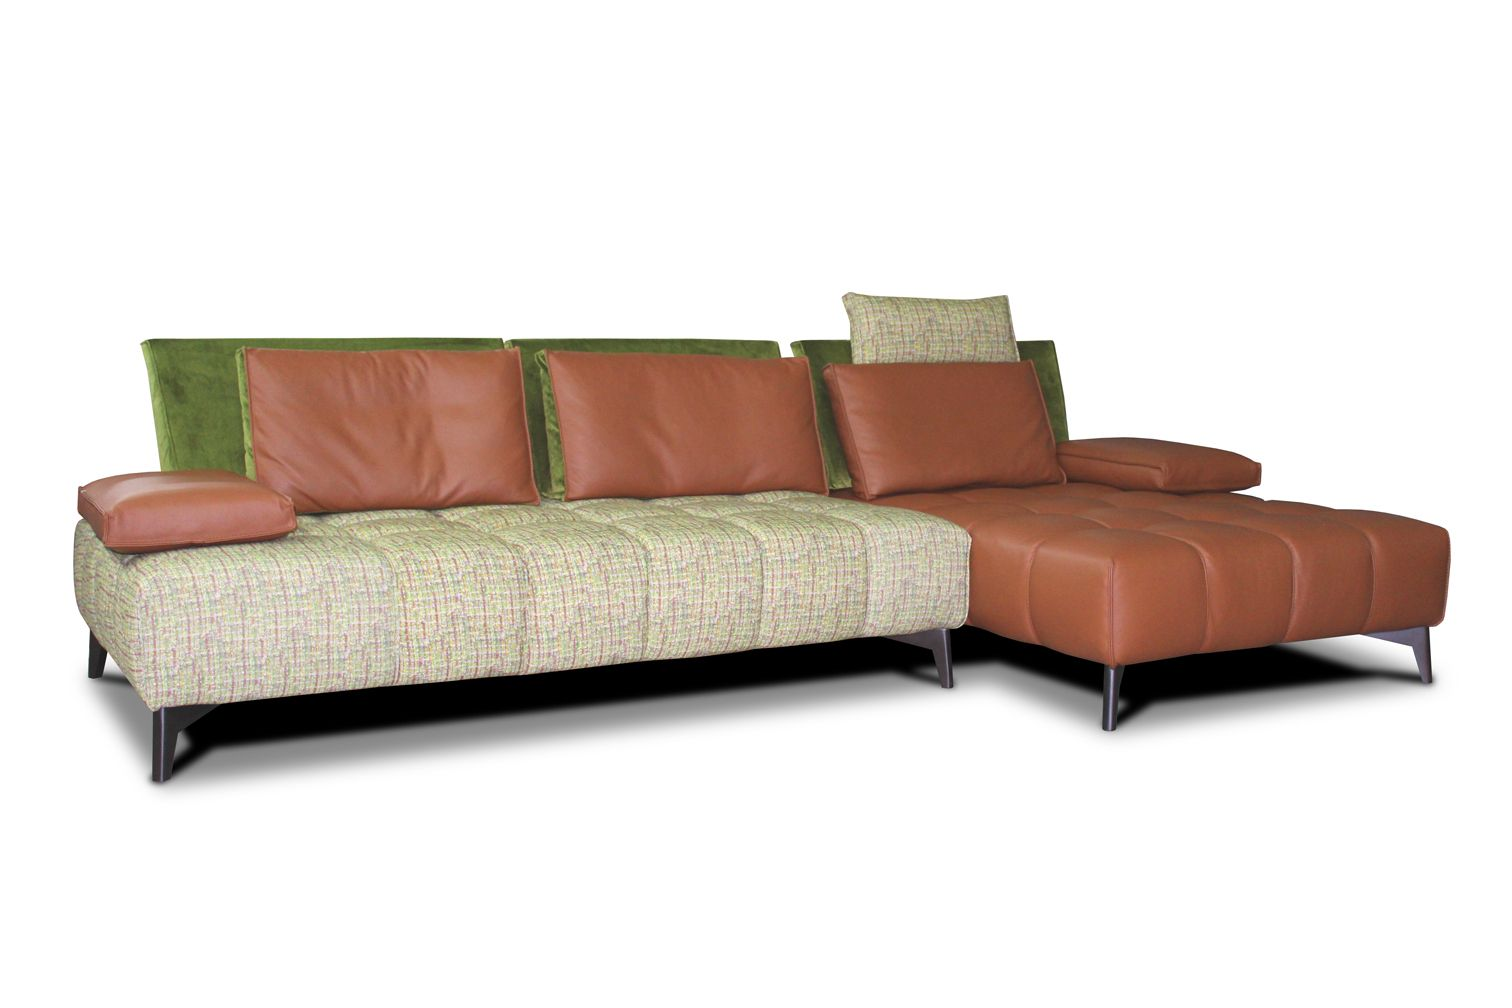 nicoletti calia sofa review bed in sm philippines furniture comfortable modular from